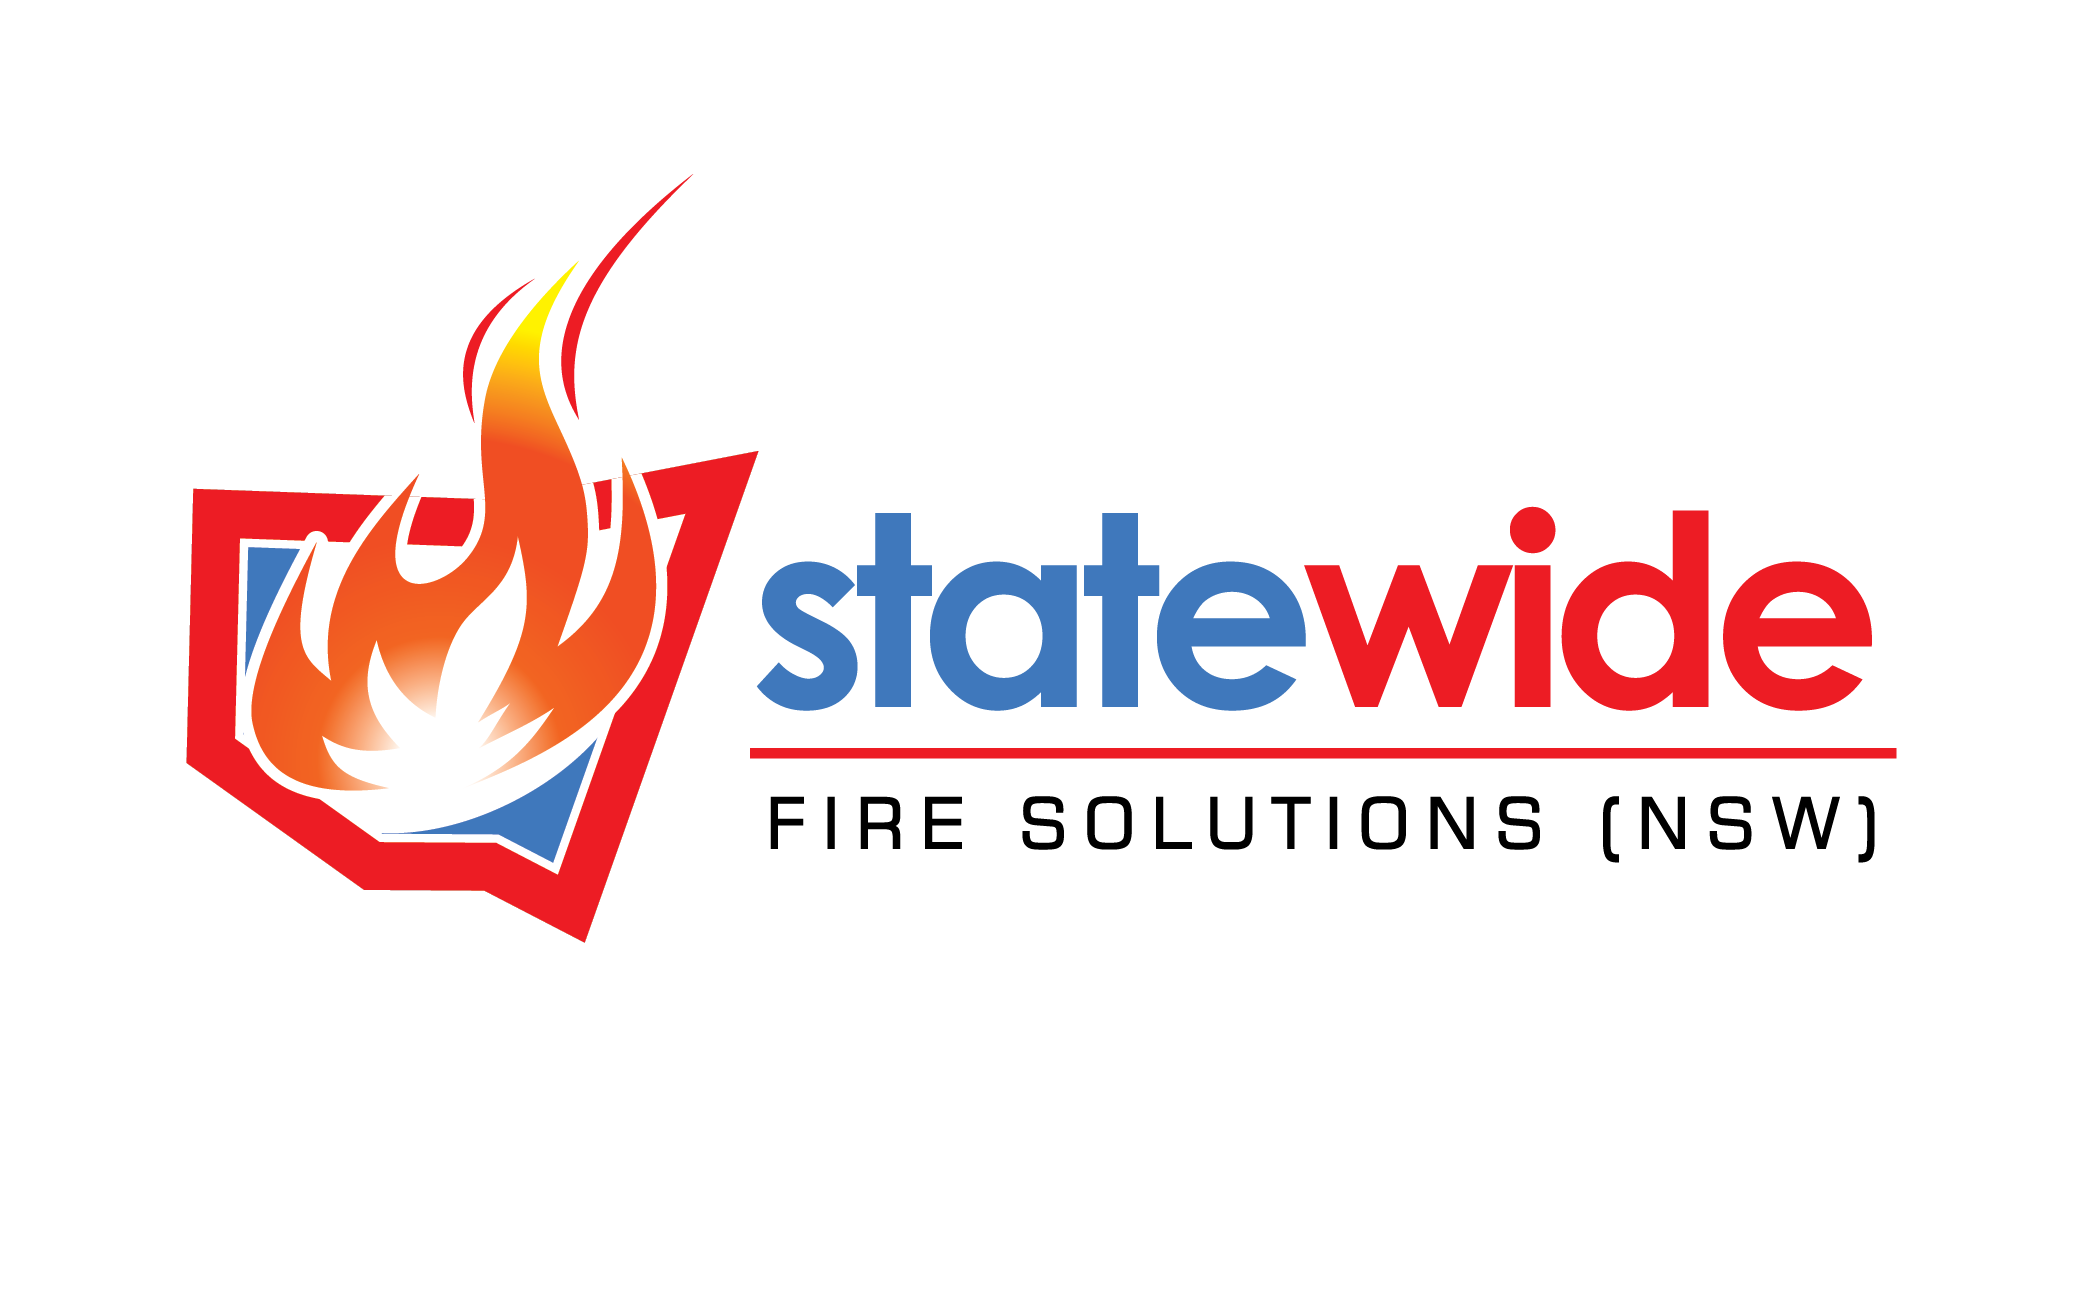 Statewide Fire Solutions (NSW) Pty Ltd